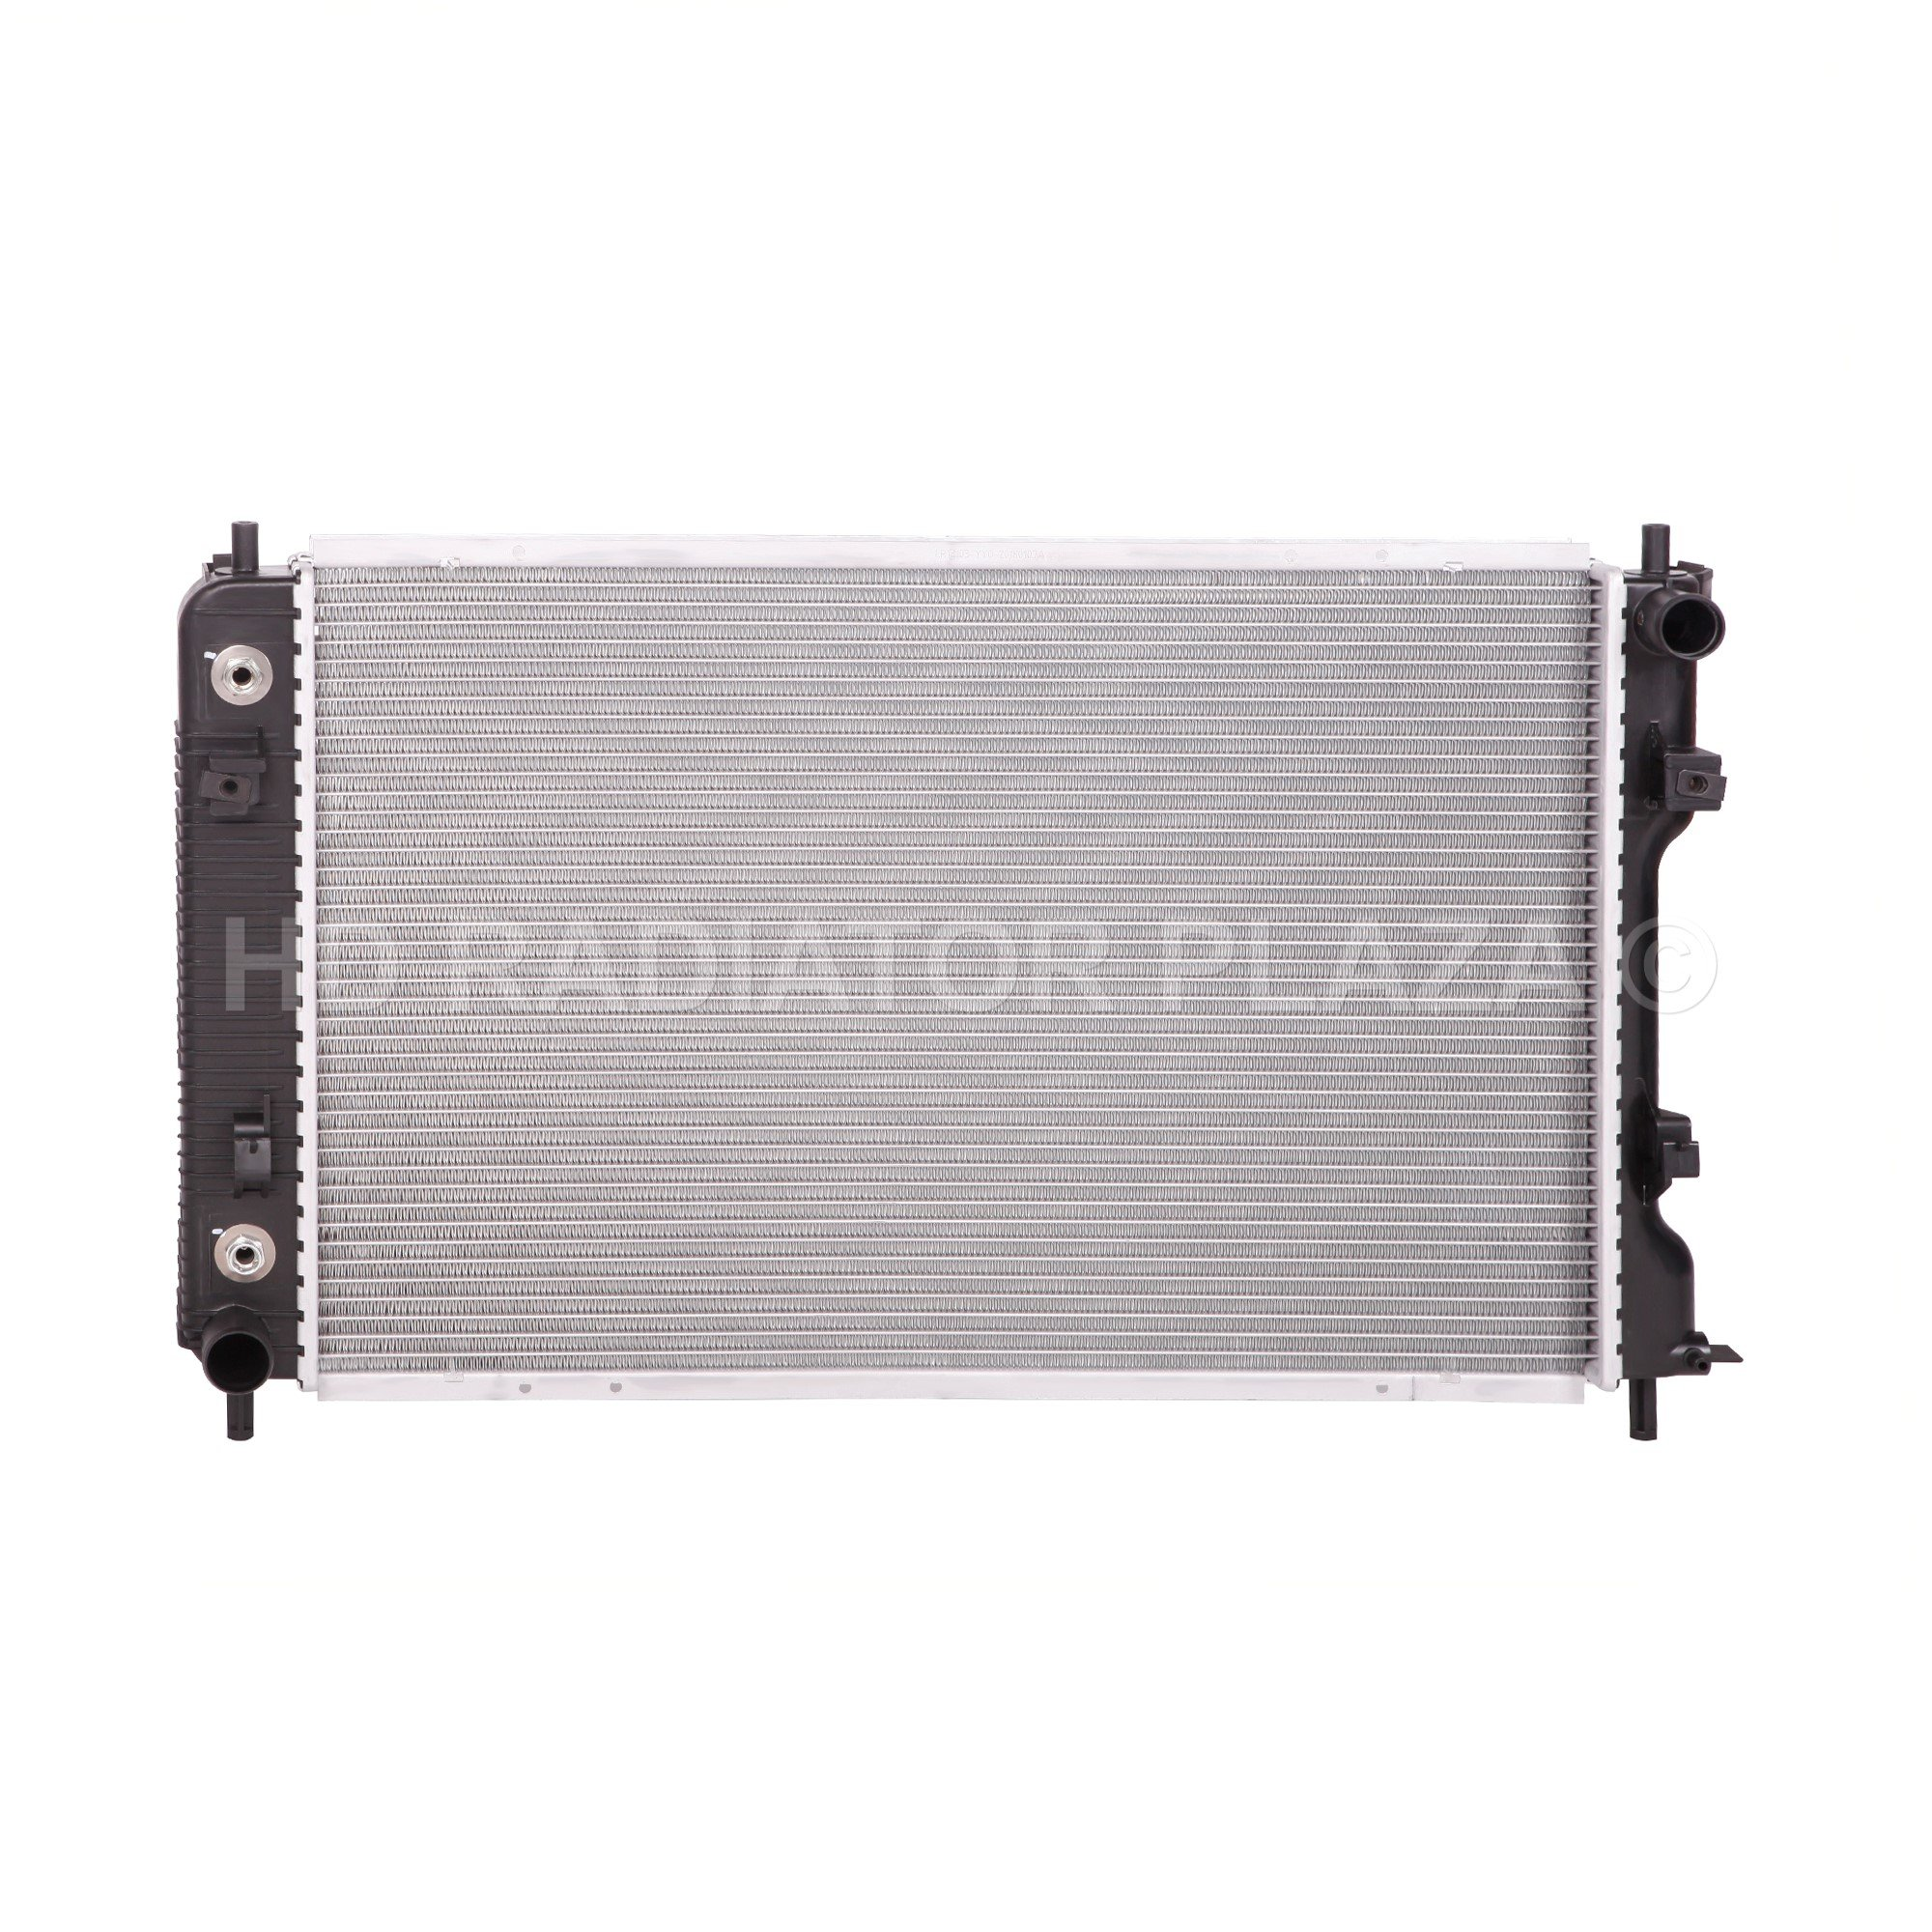 Radiator for 08-15 Chevrolet / GMC / Pontiac / Suzuki